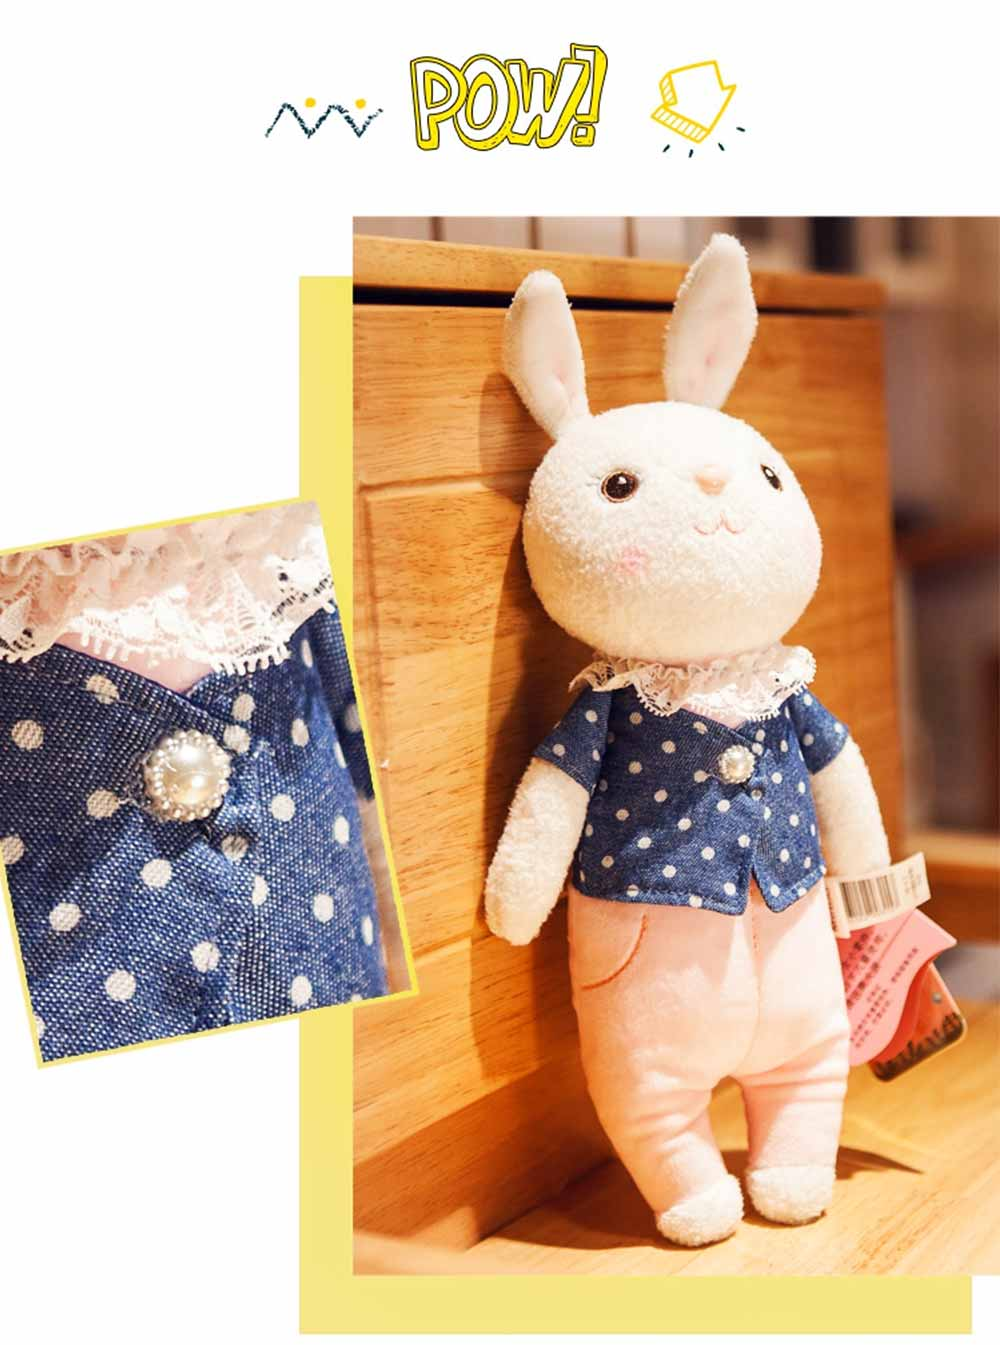 Cute Cartoon Tiramitu Rabbit Plush Stuffed Toy, Ultrasoft Smooth Children's Day Present Doll 2